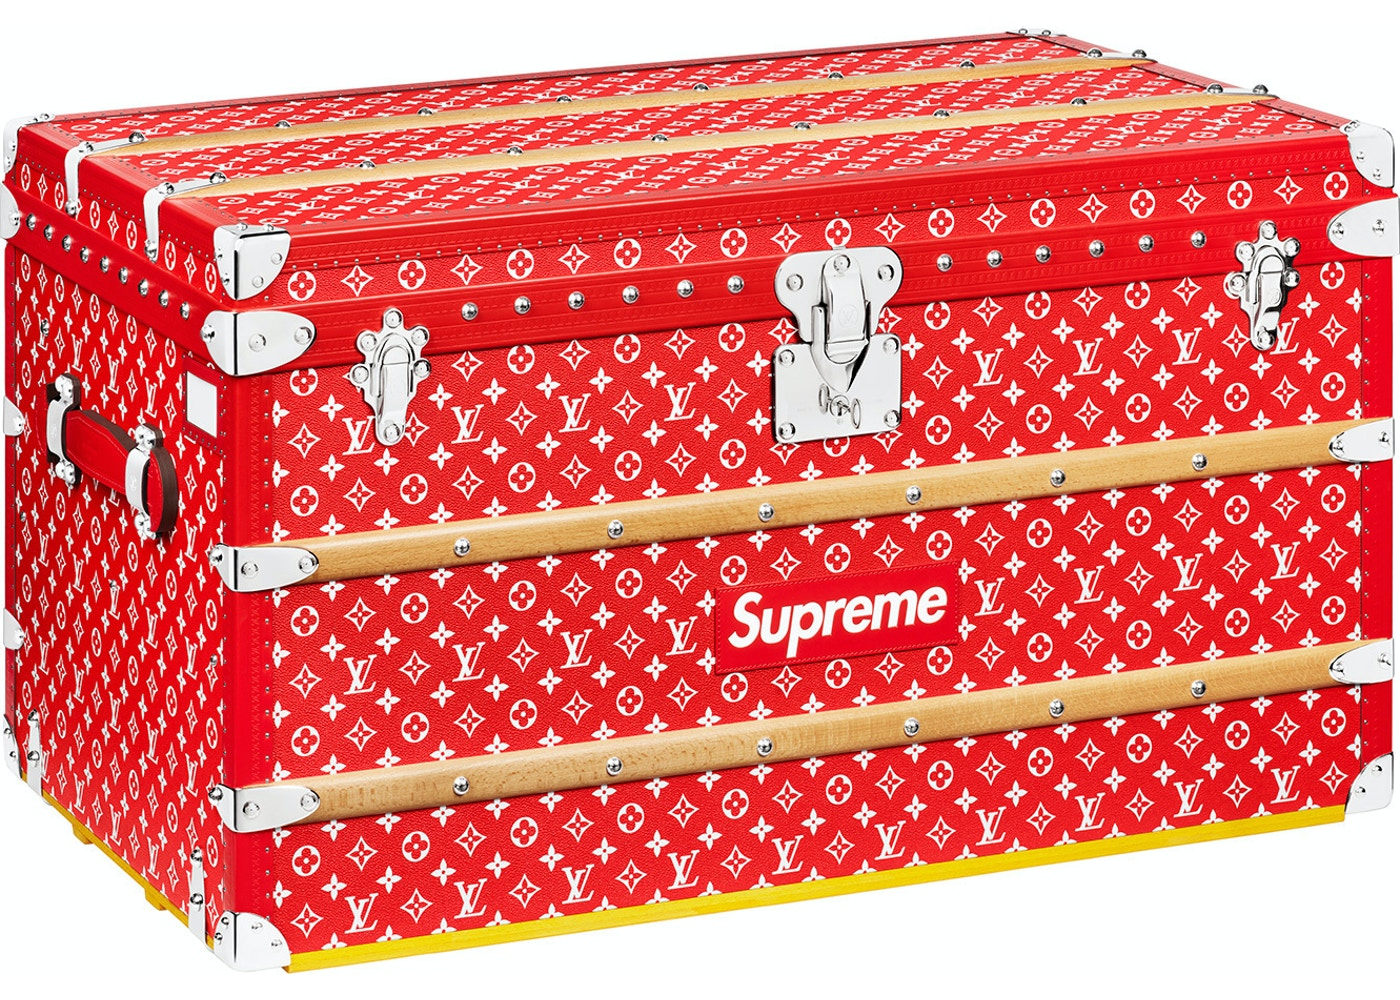 Or Ask View All Bids Louis Vuitton X Supreme Malle Courrier Trunk